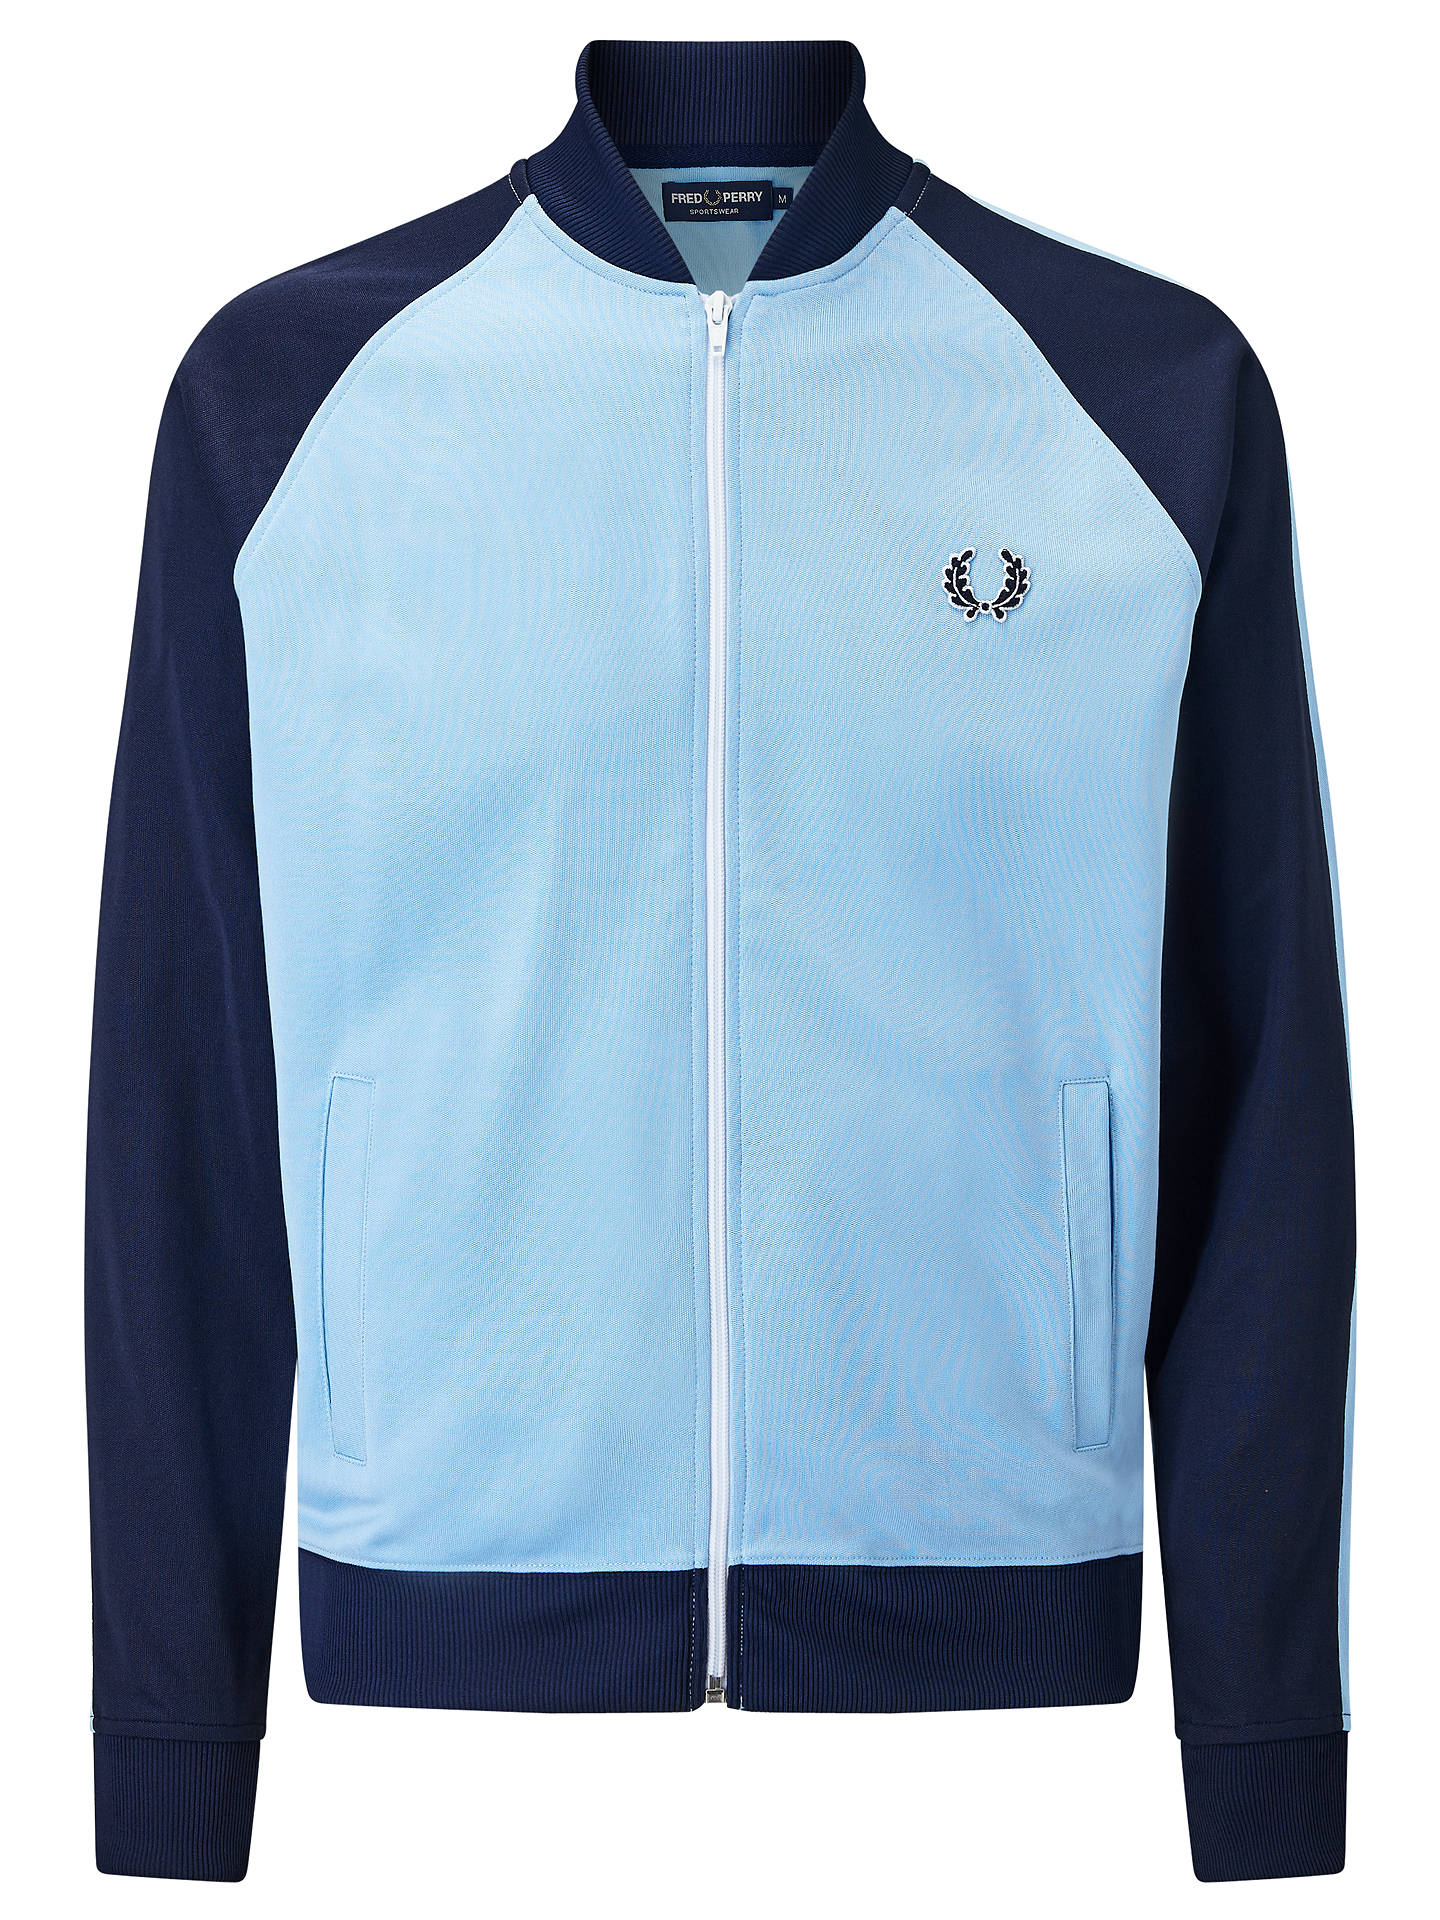 0ecf4eb60 Fred Perry Sports Authentic Bomber Track Jacket, Sky Blue at John ...